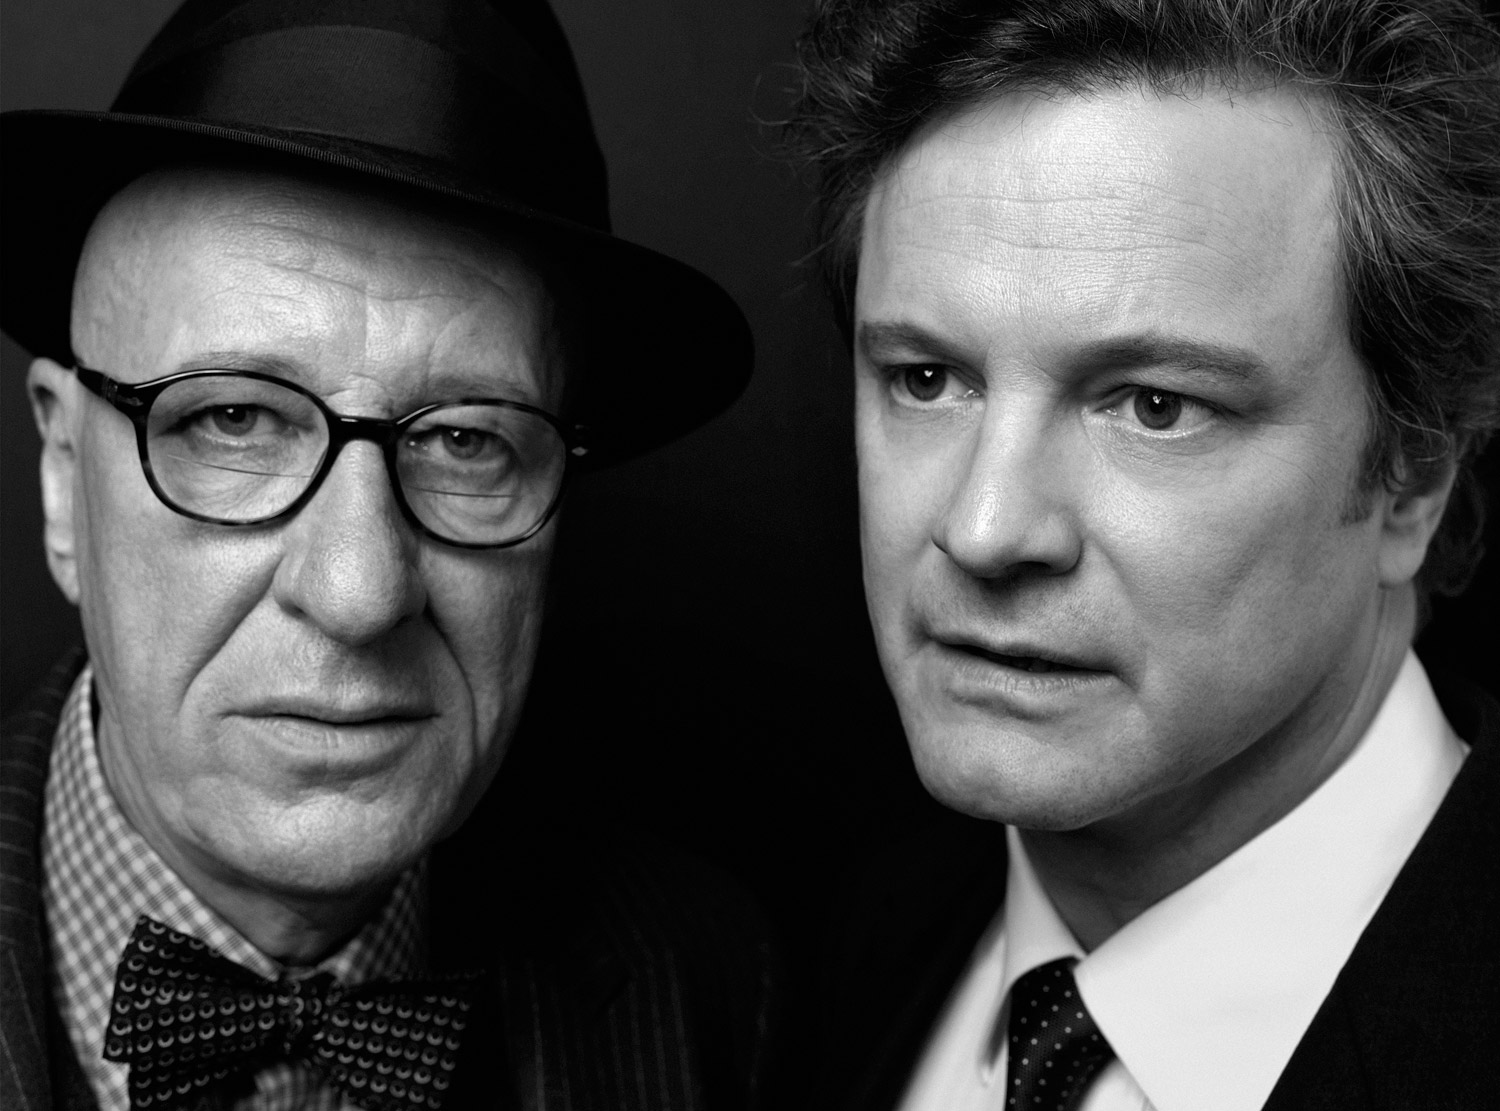 Geoffrey Rush and Colin Firth, actors. From  Great Performances,  Feb. 21, 2011, issue.